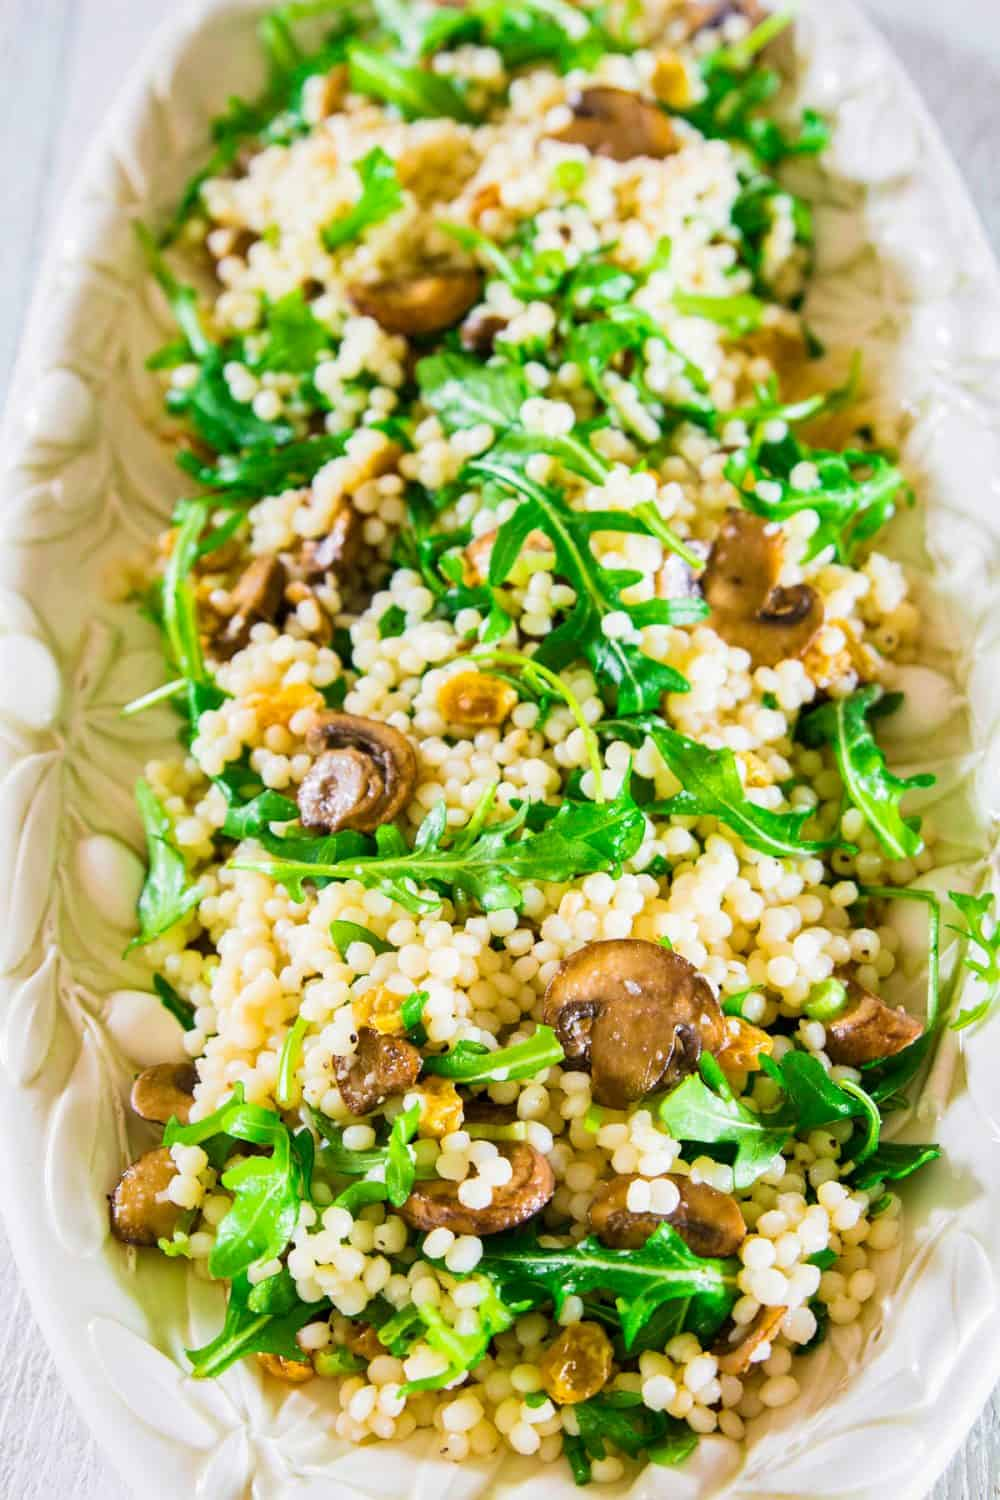 a close up image of a couscous salad mixed with baby arugula, cooked mushrooms, and golden raisins